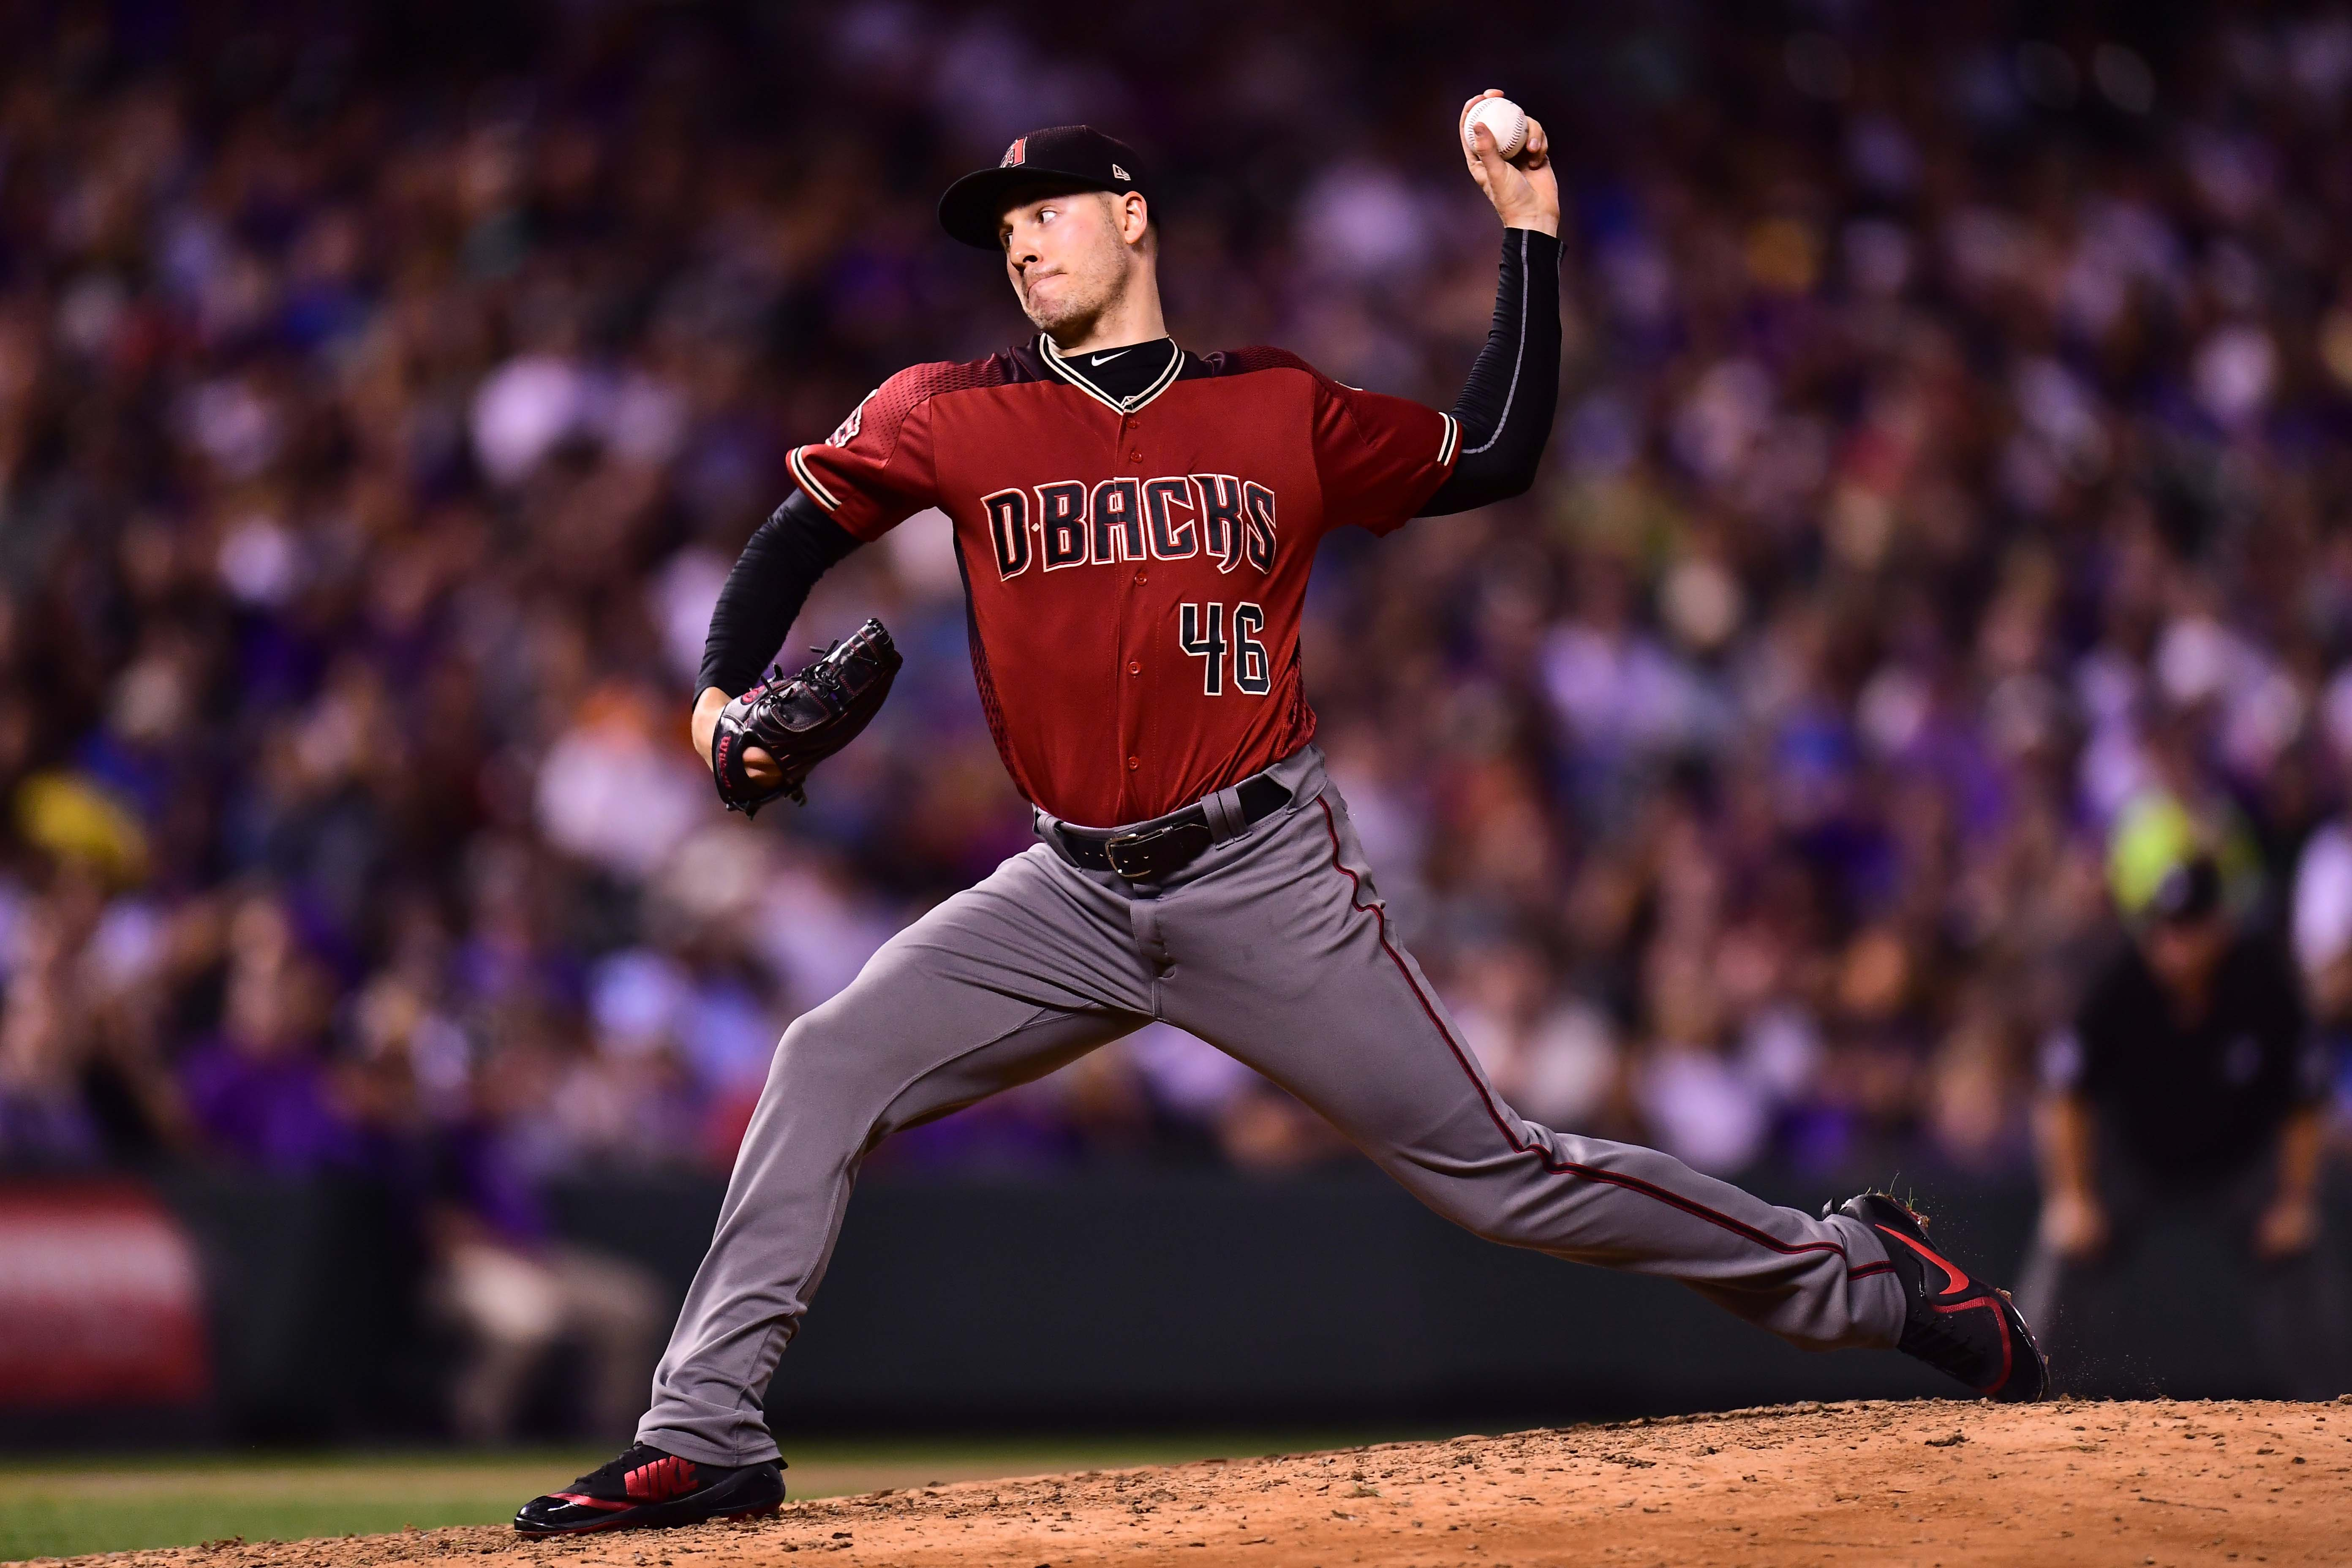 Patrick Corbin has come a long way since his post-Tommy John struggles